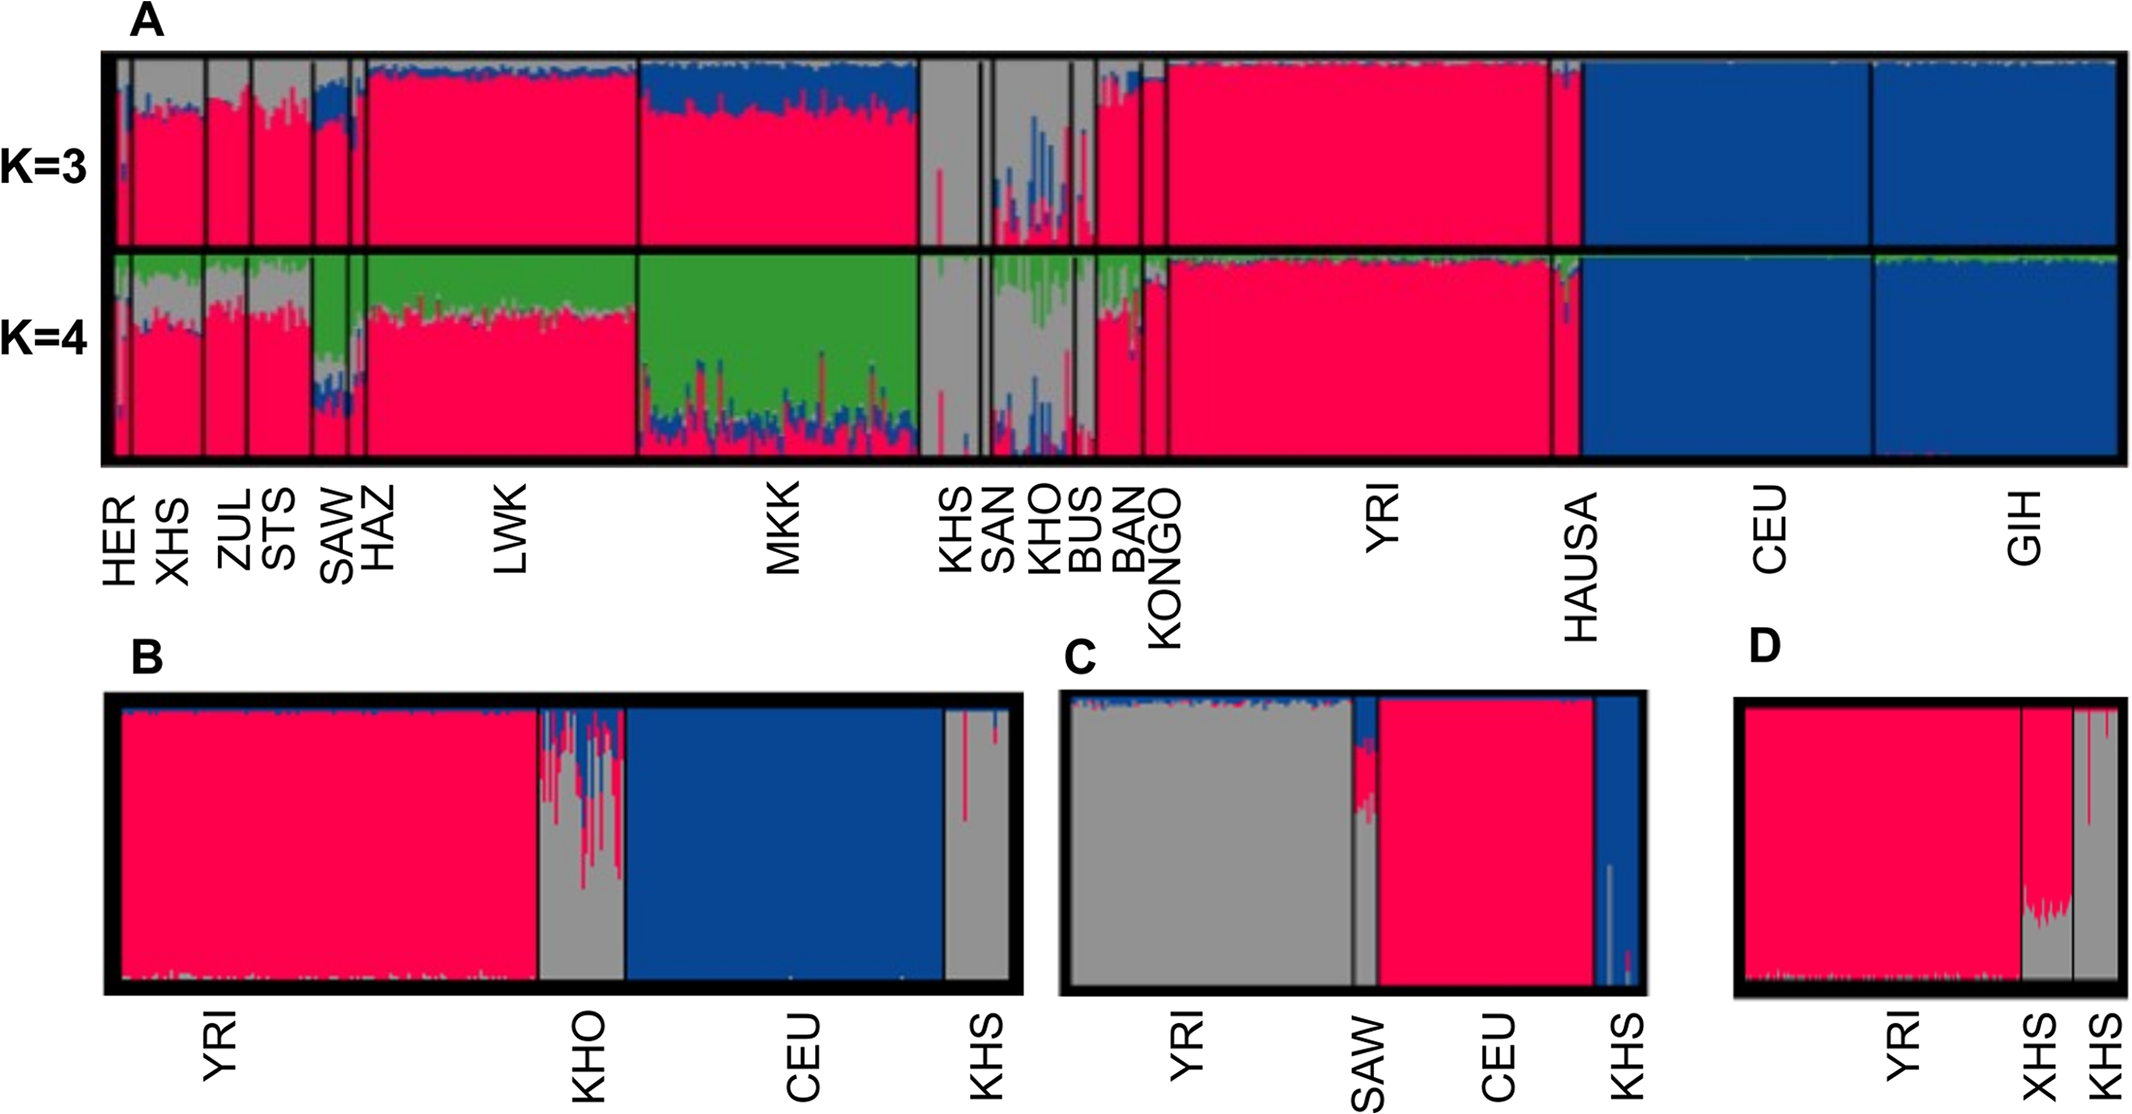 (A) Admixture analysis in southern African and other sub-Saharan African populations compared with Europeans and Asians.